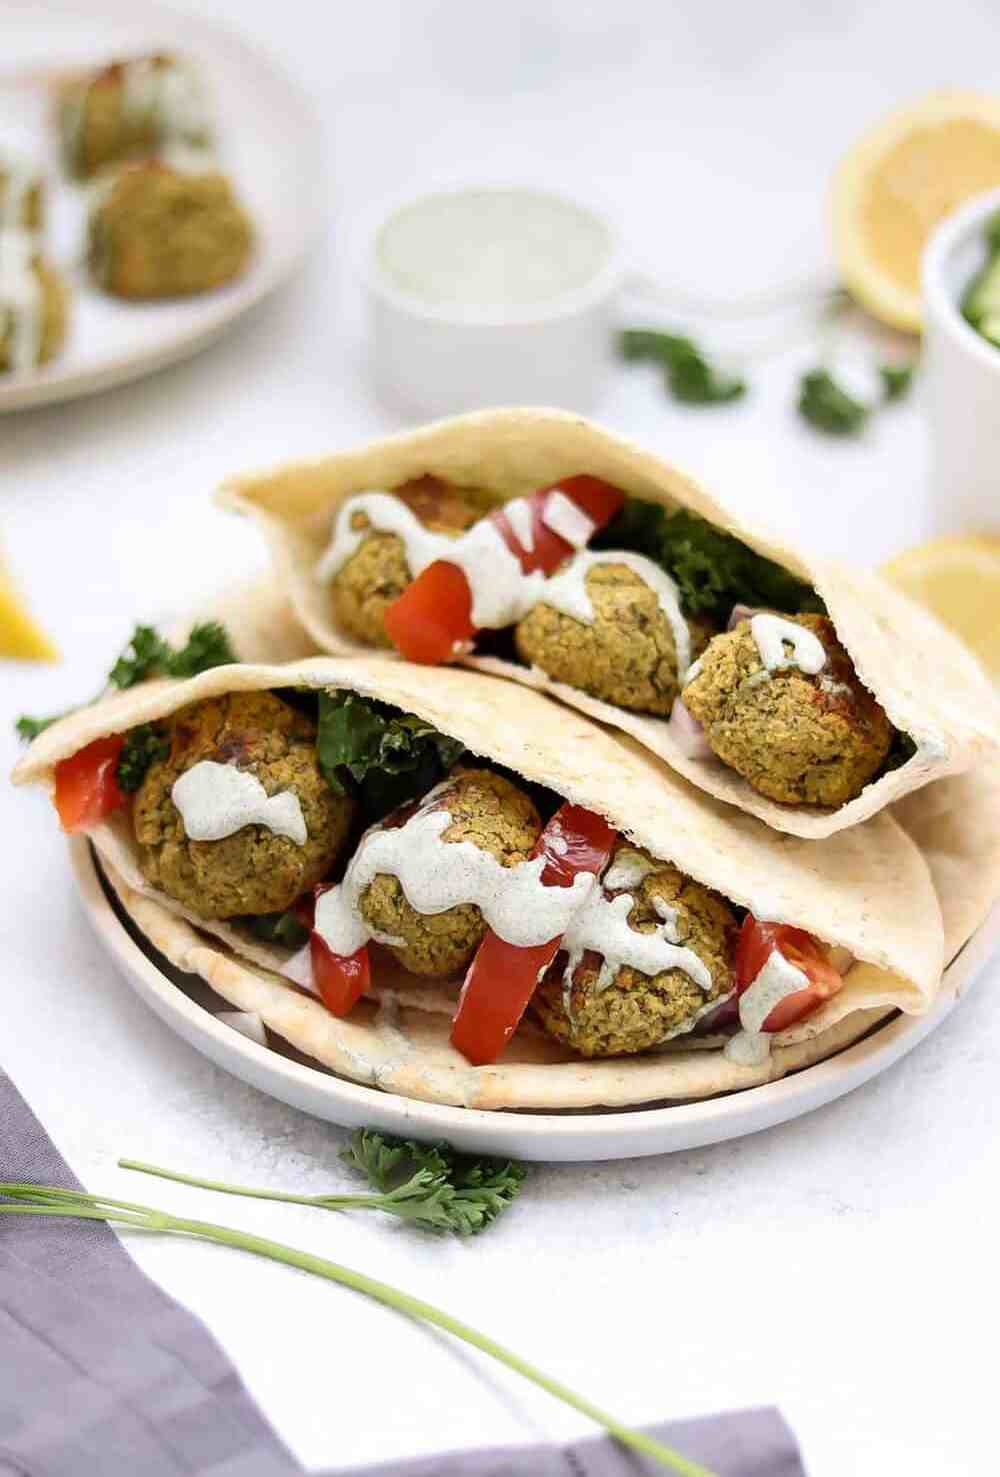 Baked falafel recipe pictured with pita, creamy dill dressing, and fresh cilantro.